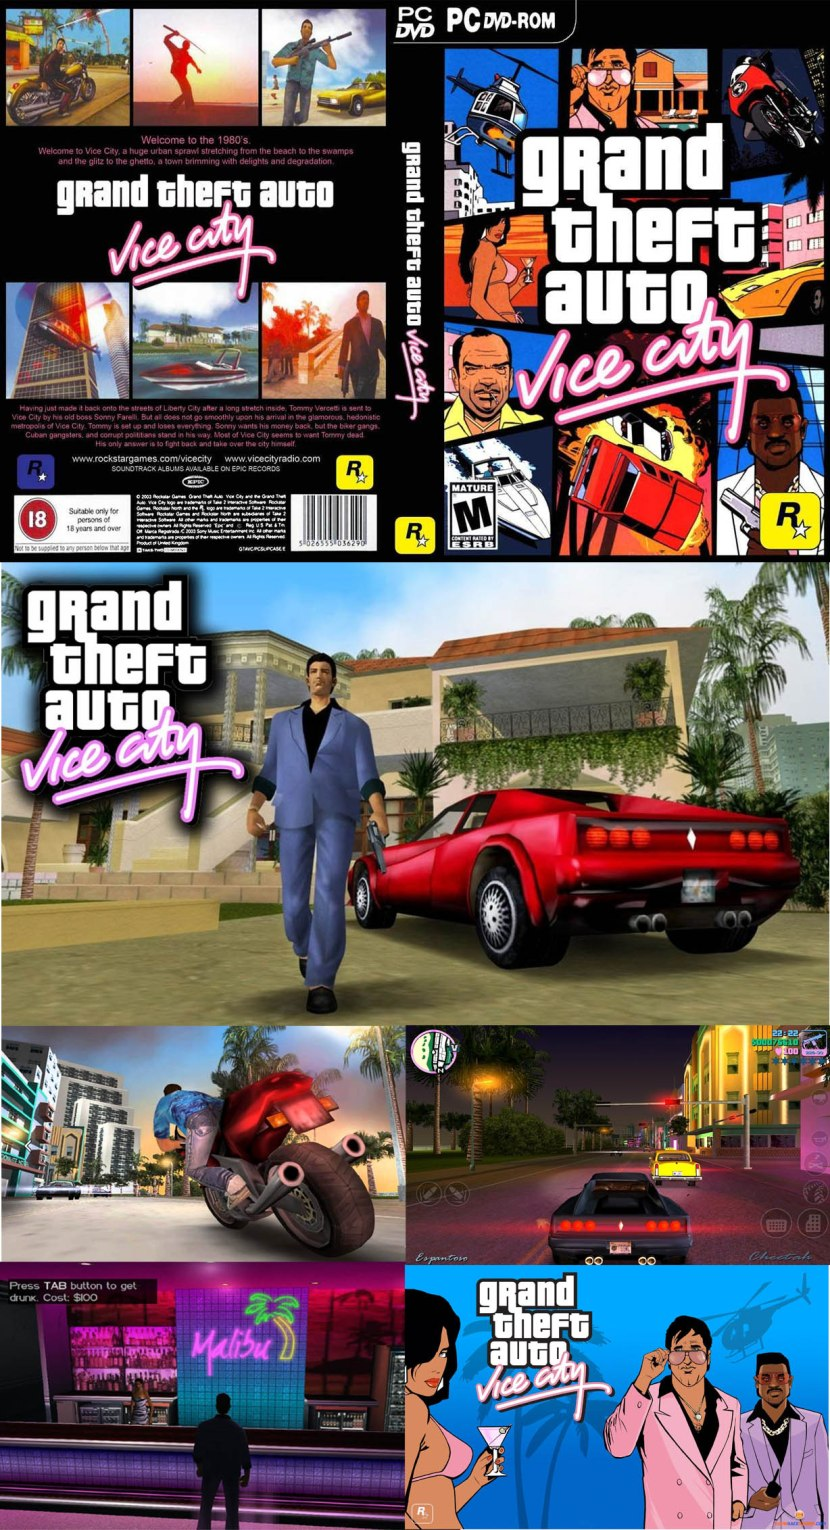 viceCity copy